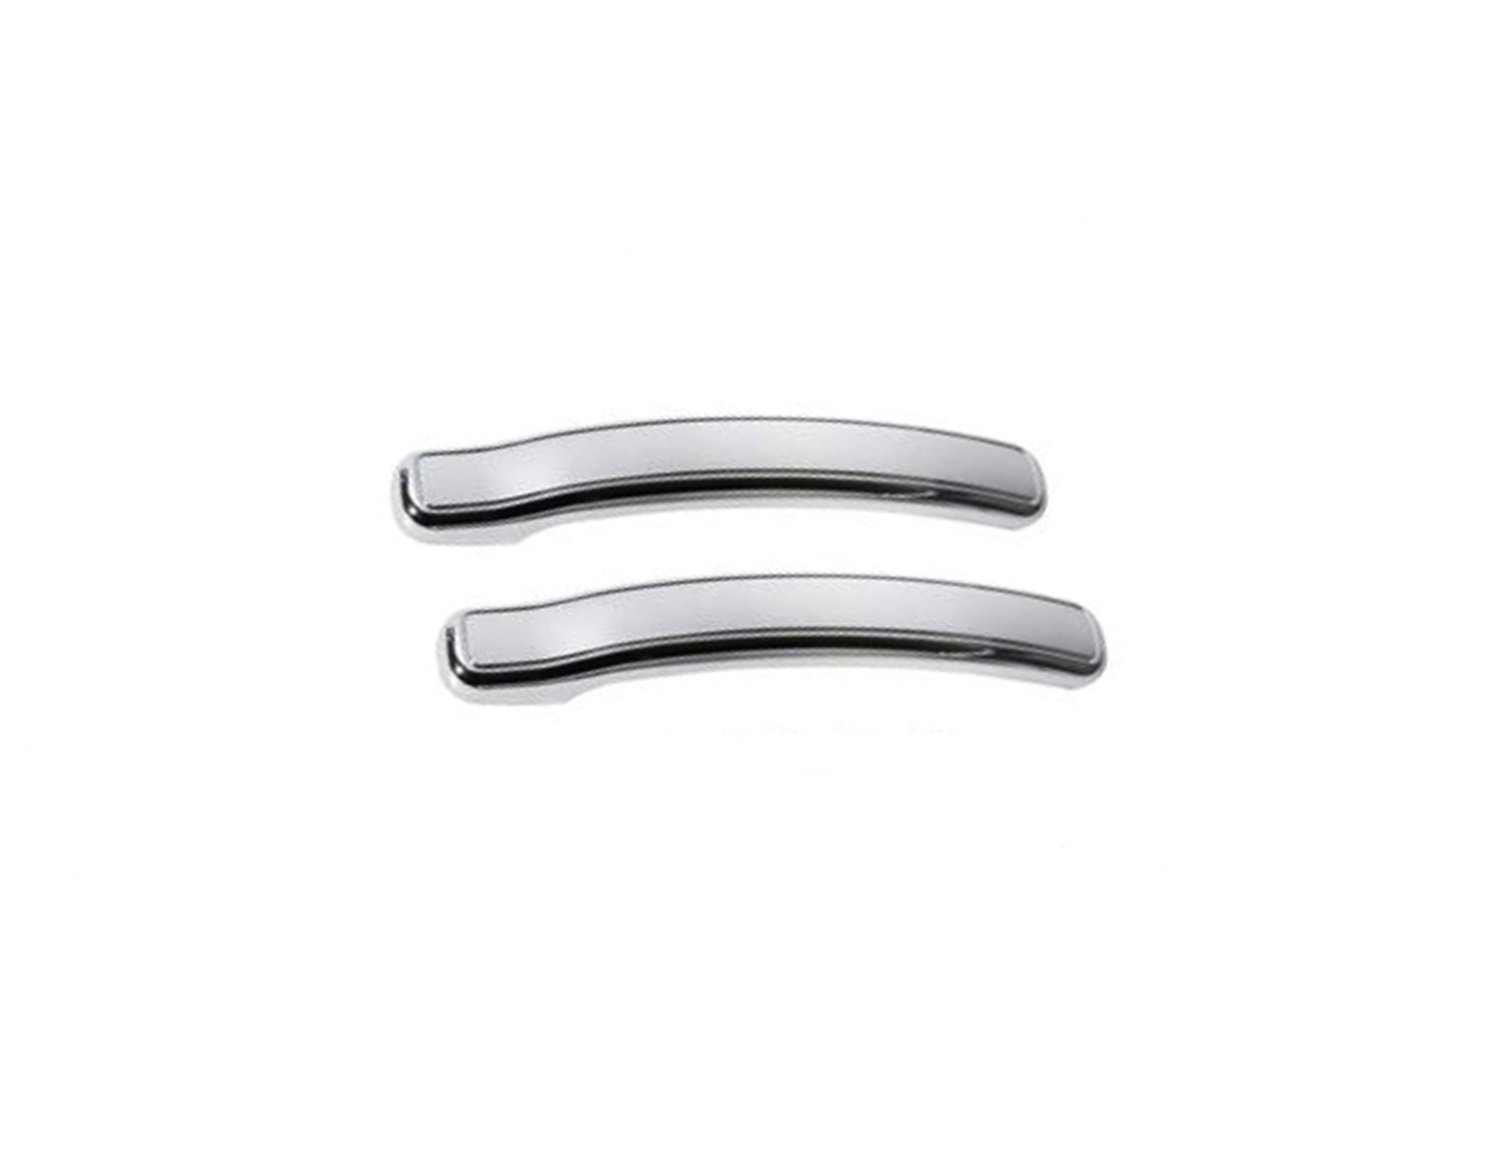 Putco 400015 Chrome Trim Tailgate and Rear Handle Cover